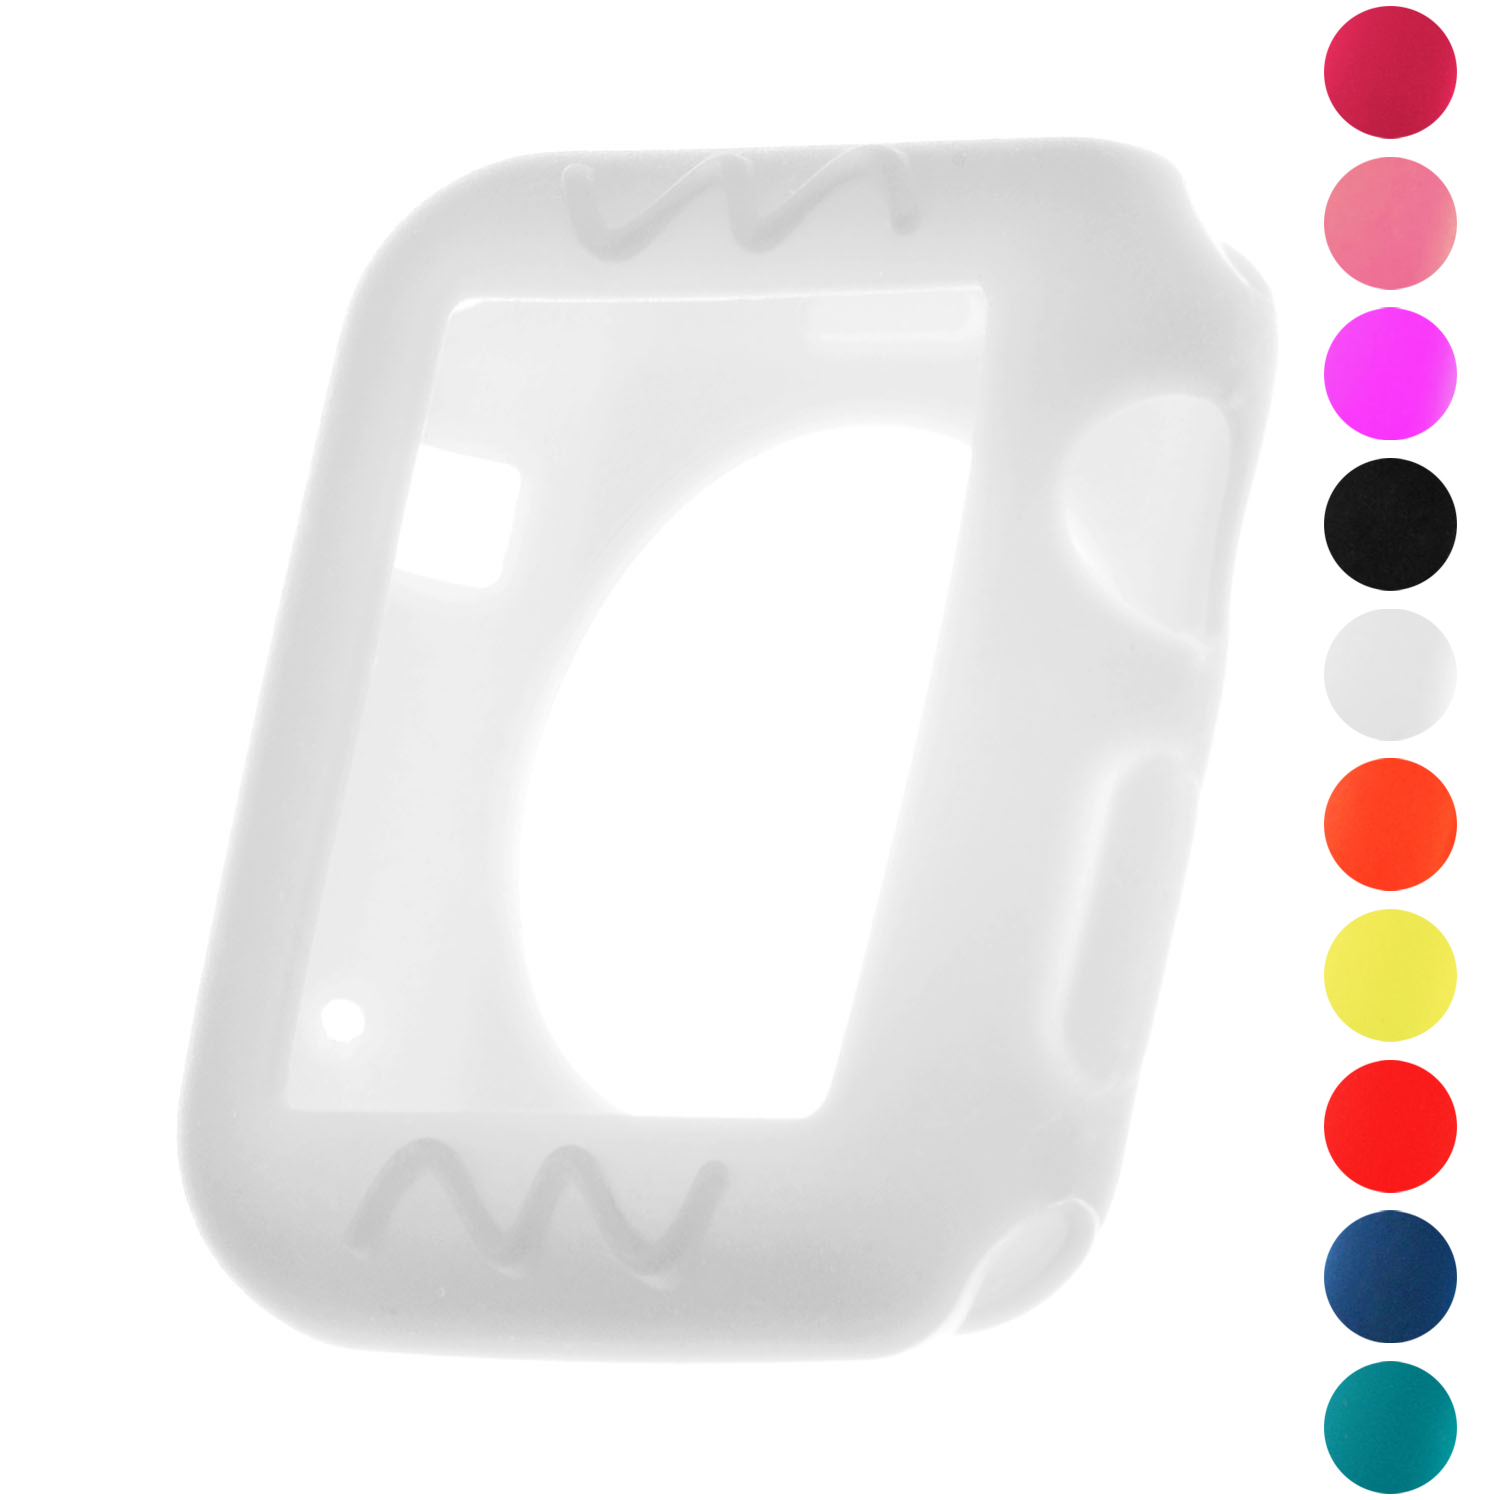 StrapsCo Silicone Rubber Protective Case Cover for 38mm 42mm Apple Watch Series 1/2/3 - image 3 of 3